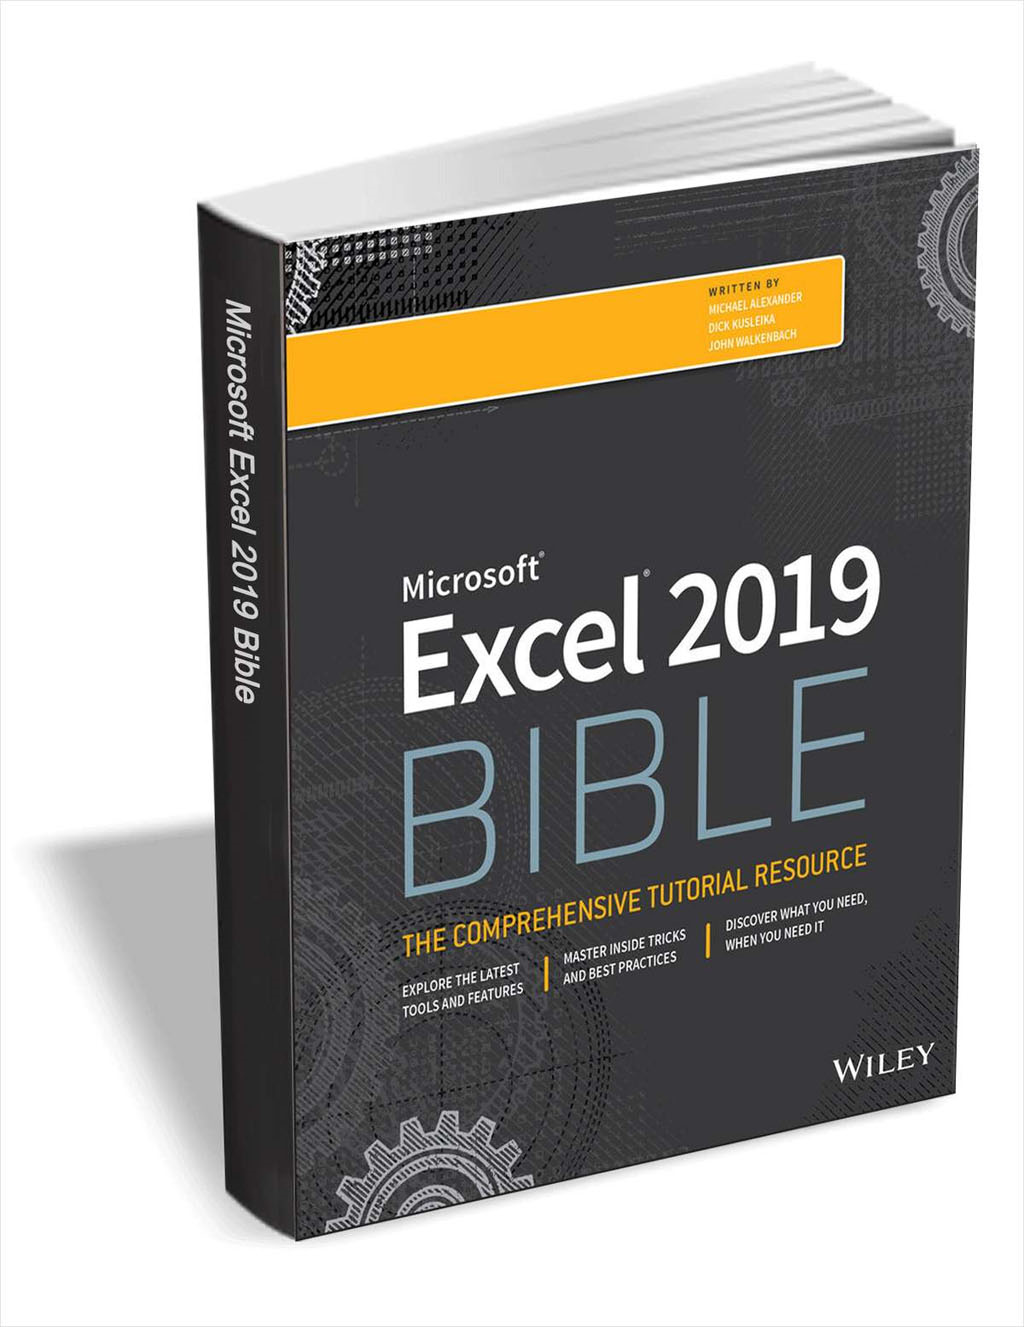 Excel 2019 Bible ($35.99 Value) FREE for a Limited Time Screenshot